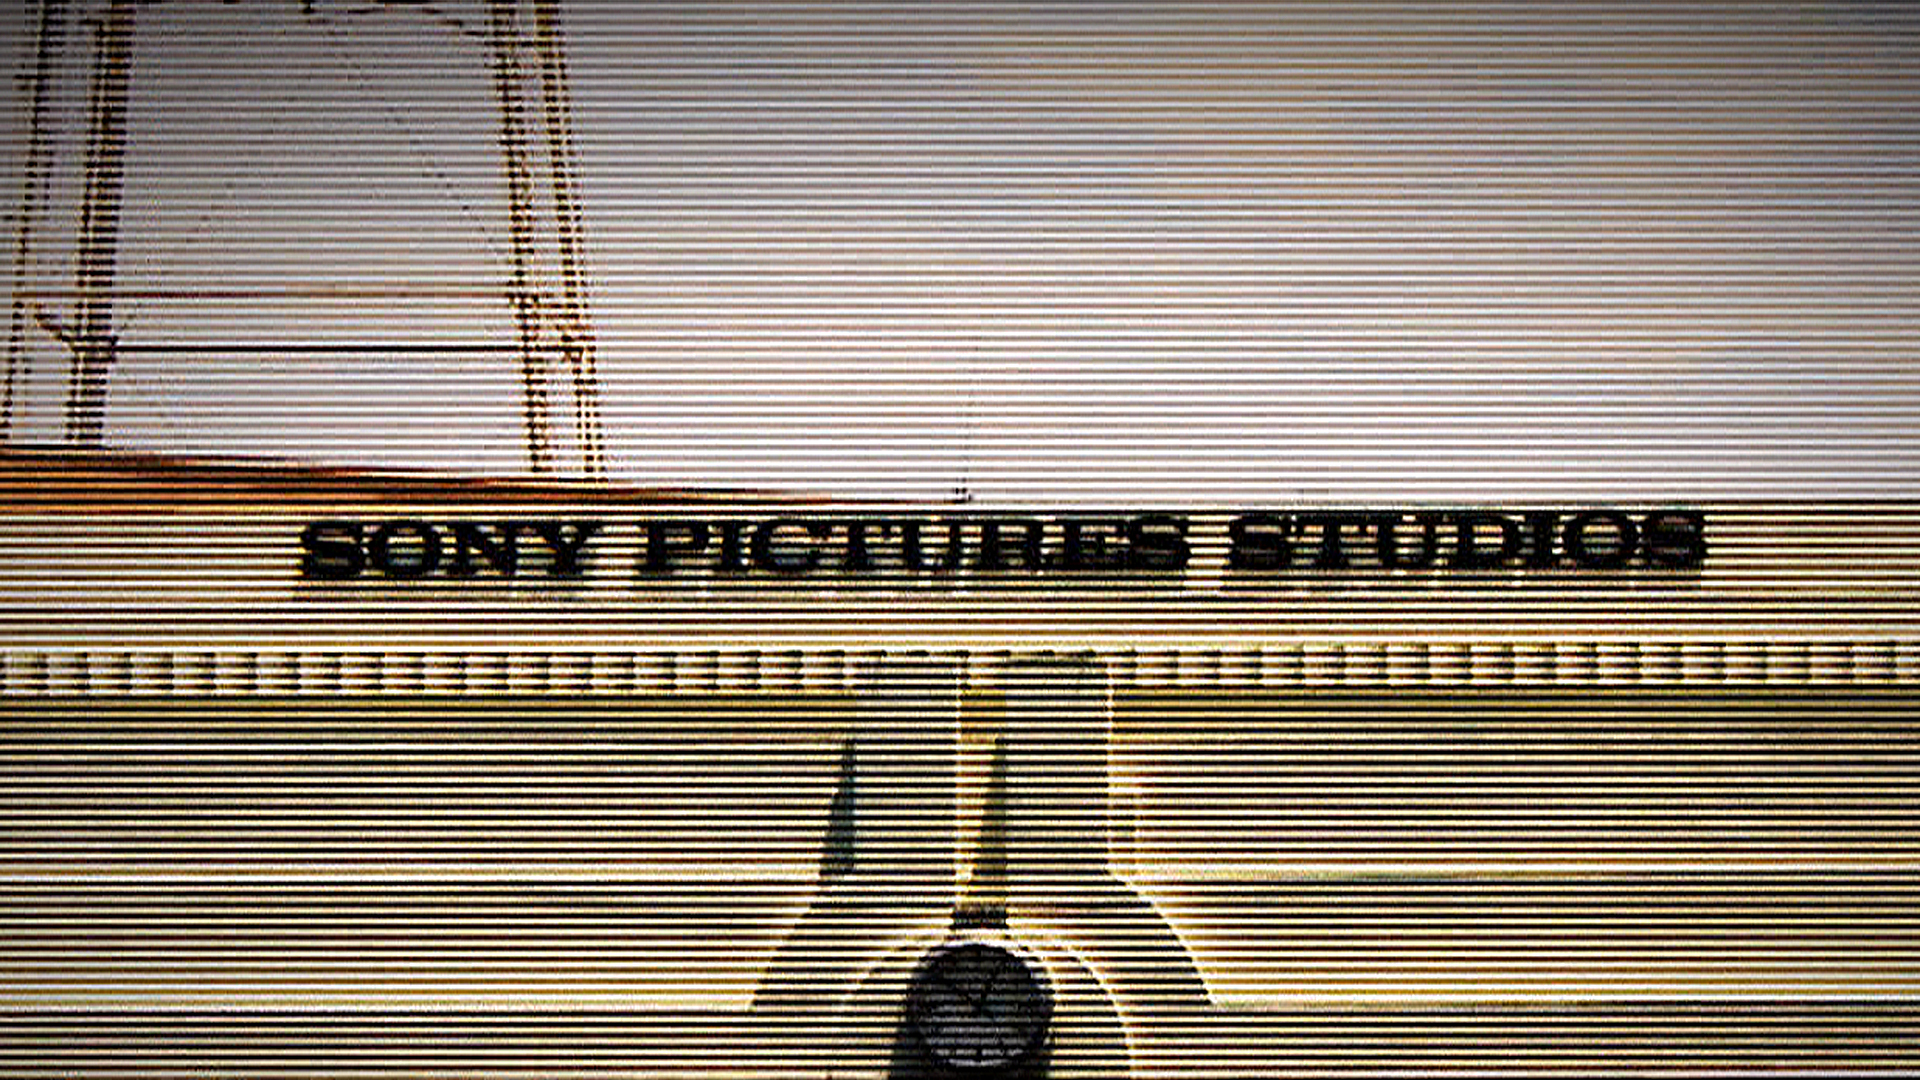 Sony Hackers Demand 'The Interview' Be Canceled - or Else